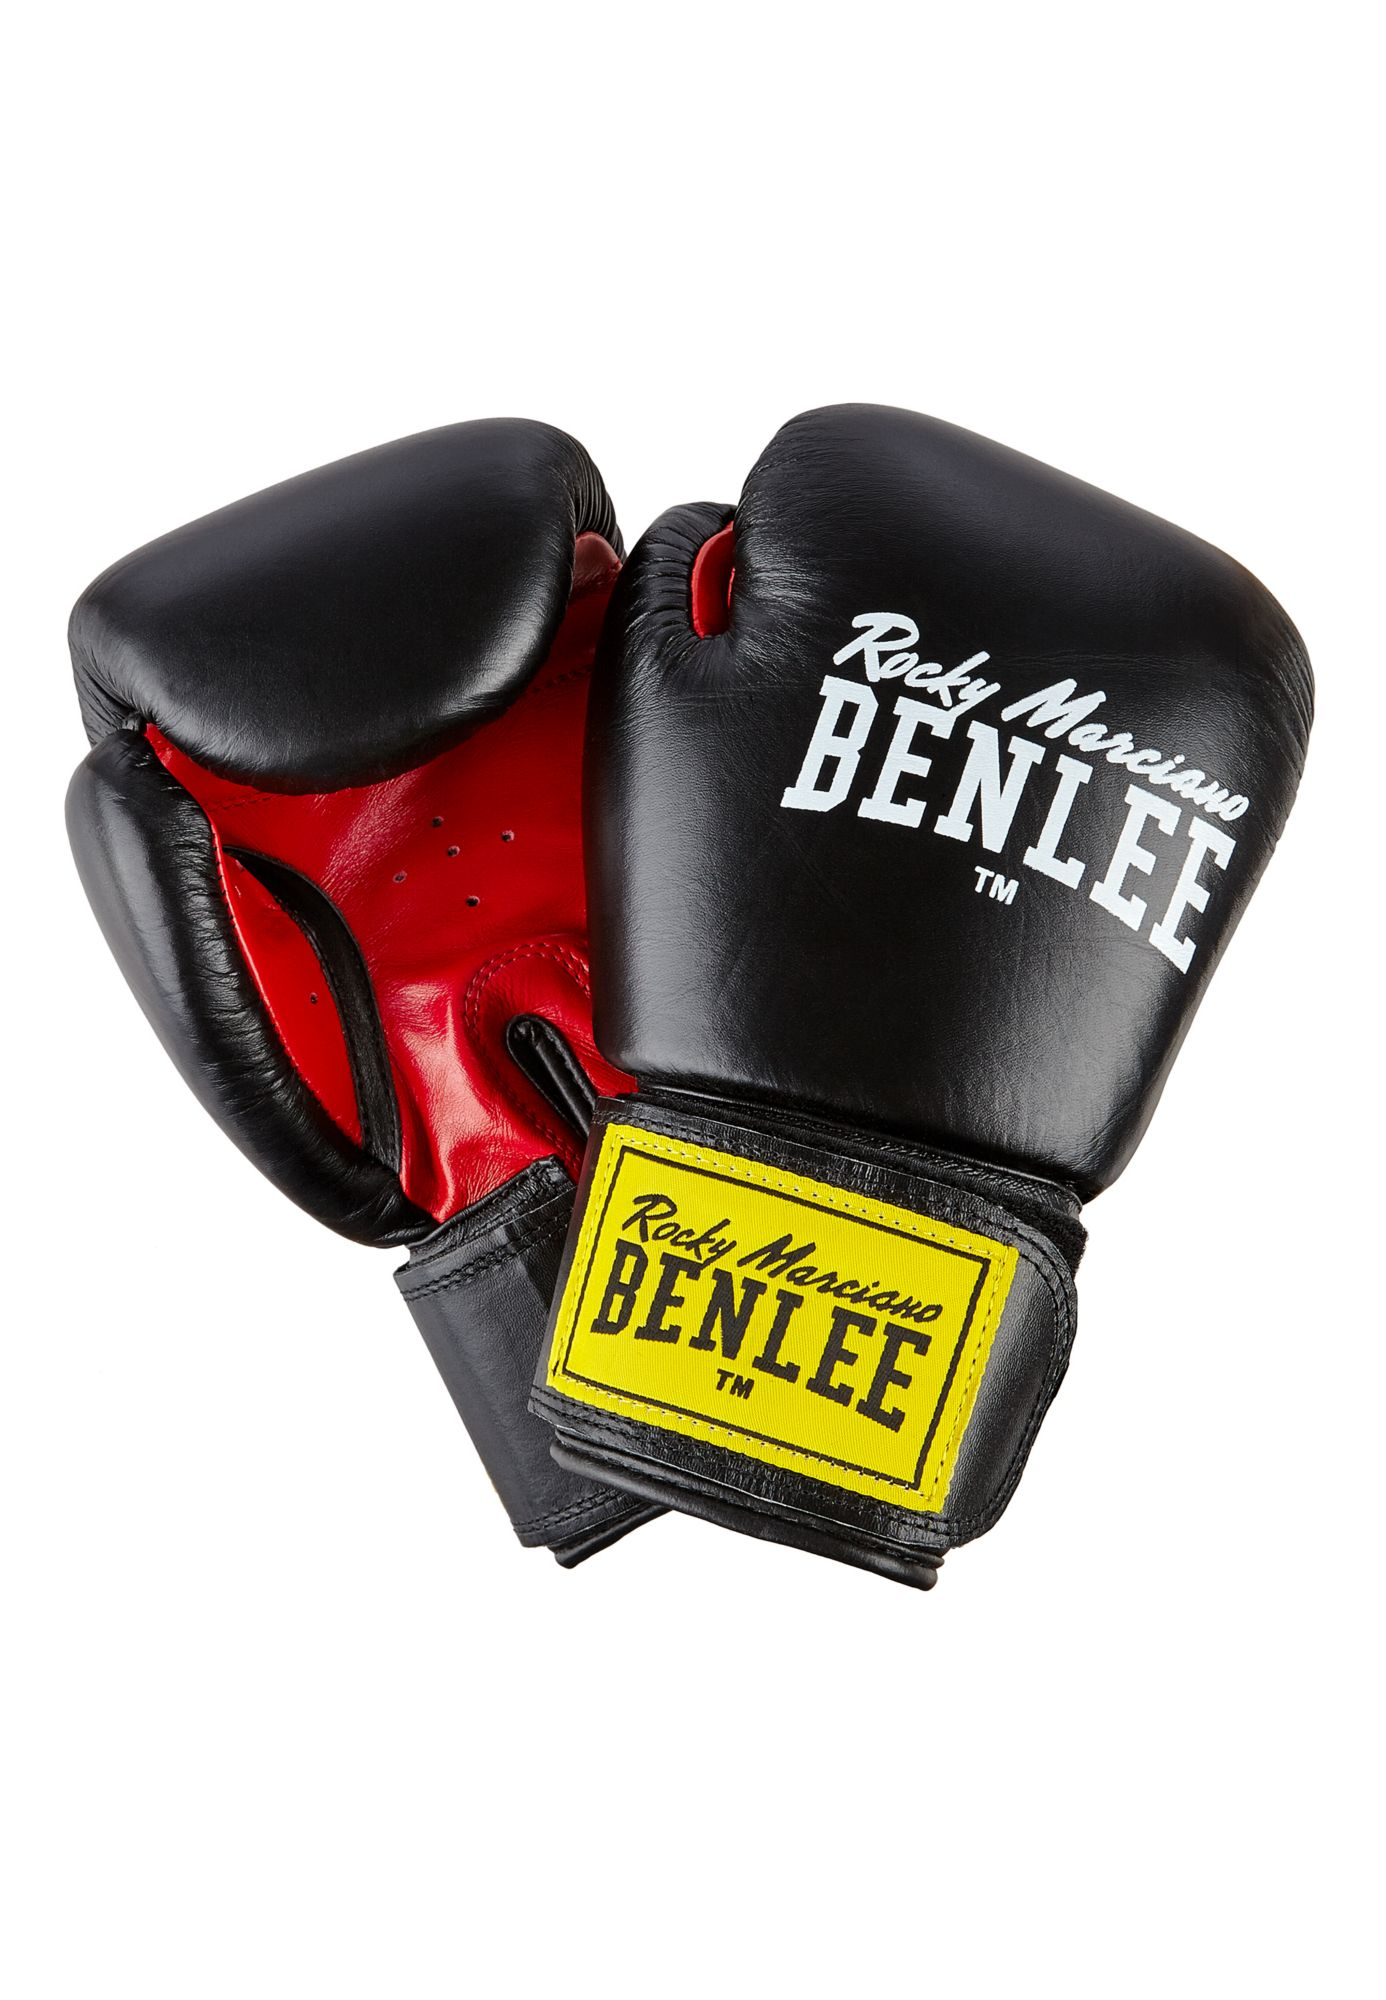 BENLEE ROCKY MARCIANO Benlee Rocky Marciano Boxhandschuhe »FIGHTER«